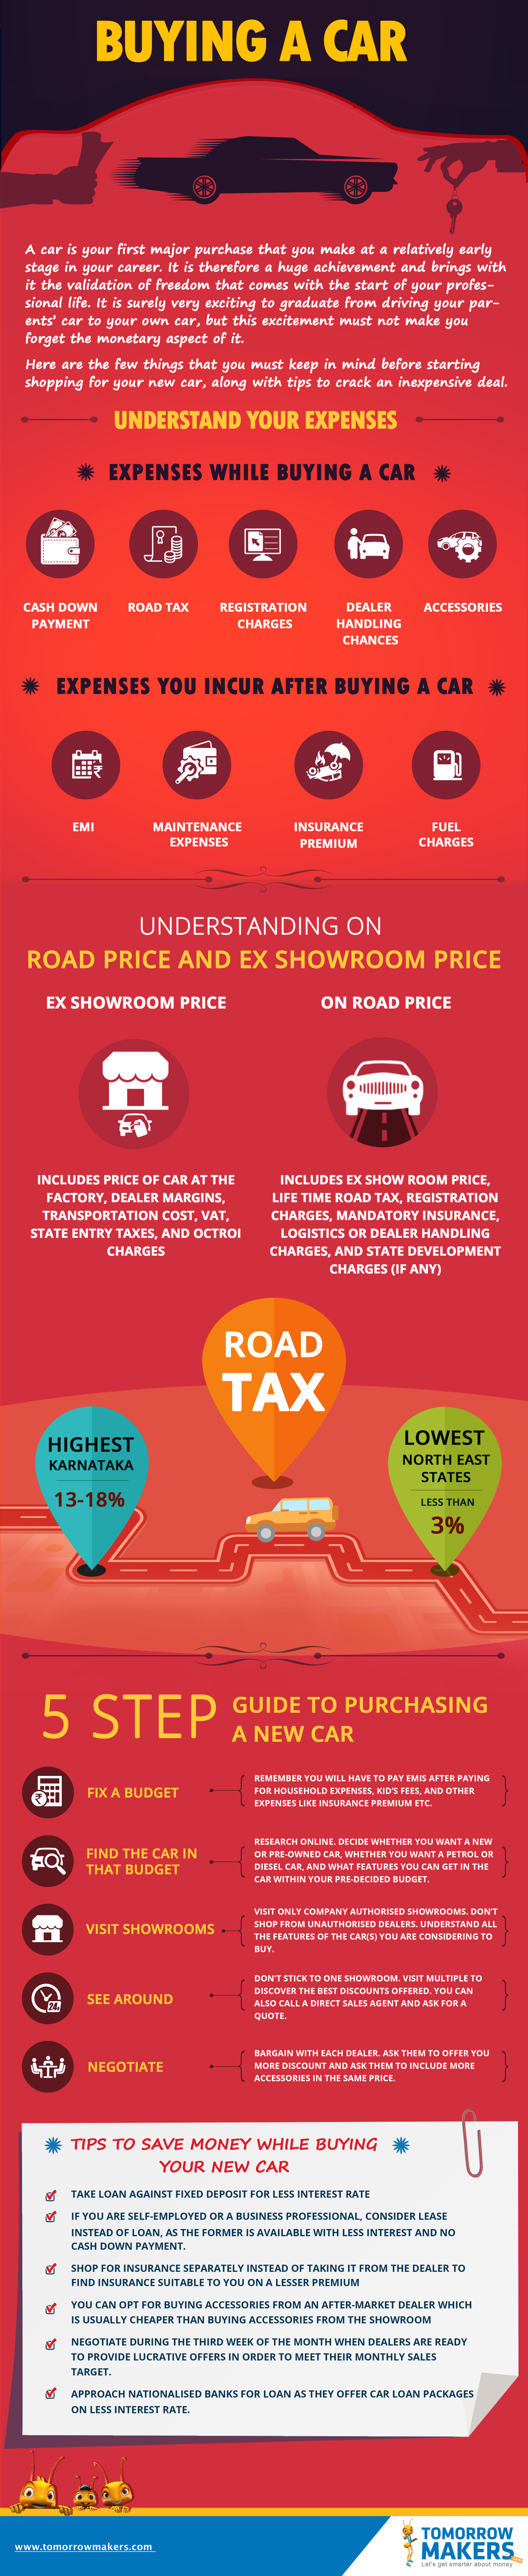 financial-planning-before-important-milestones-buying-car-infographic